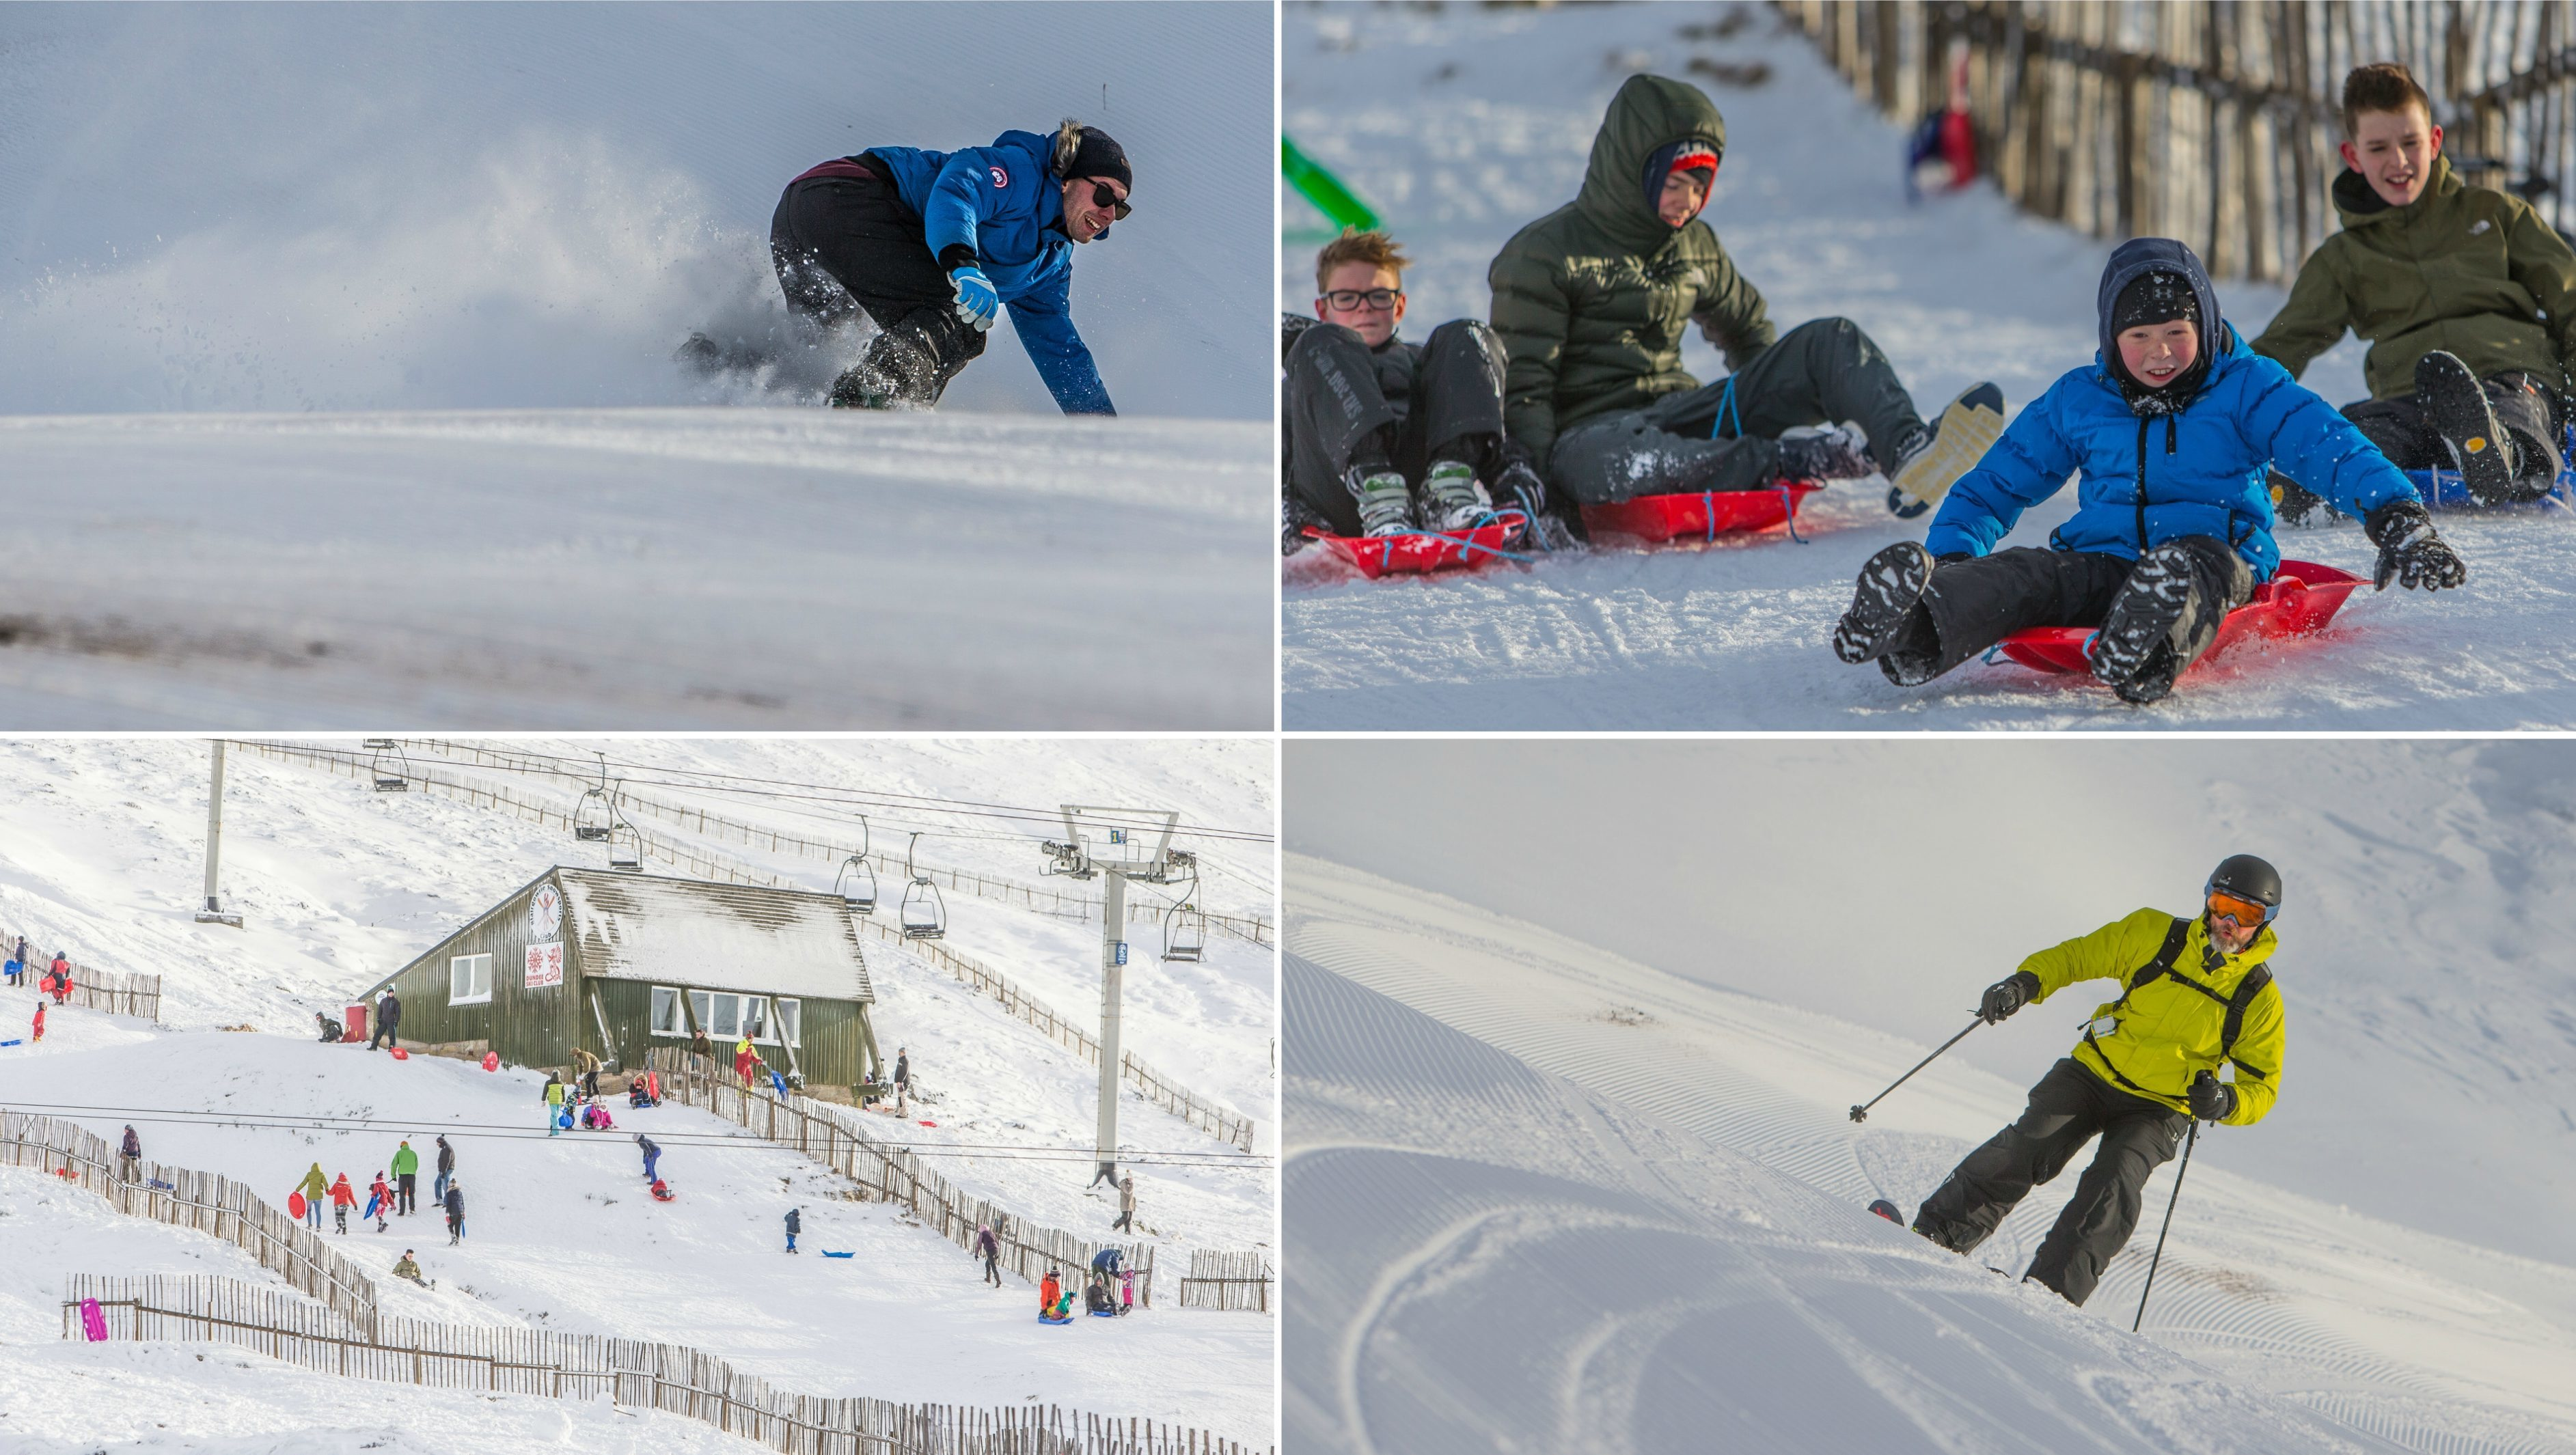 Conditions were perfect at Glenshee Ski Centre.